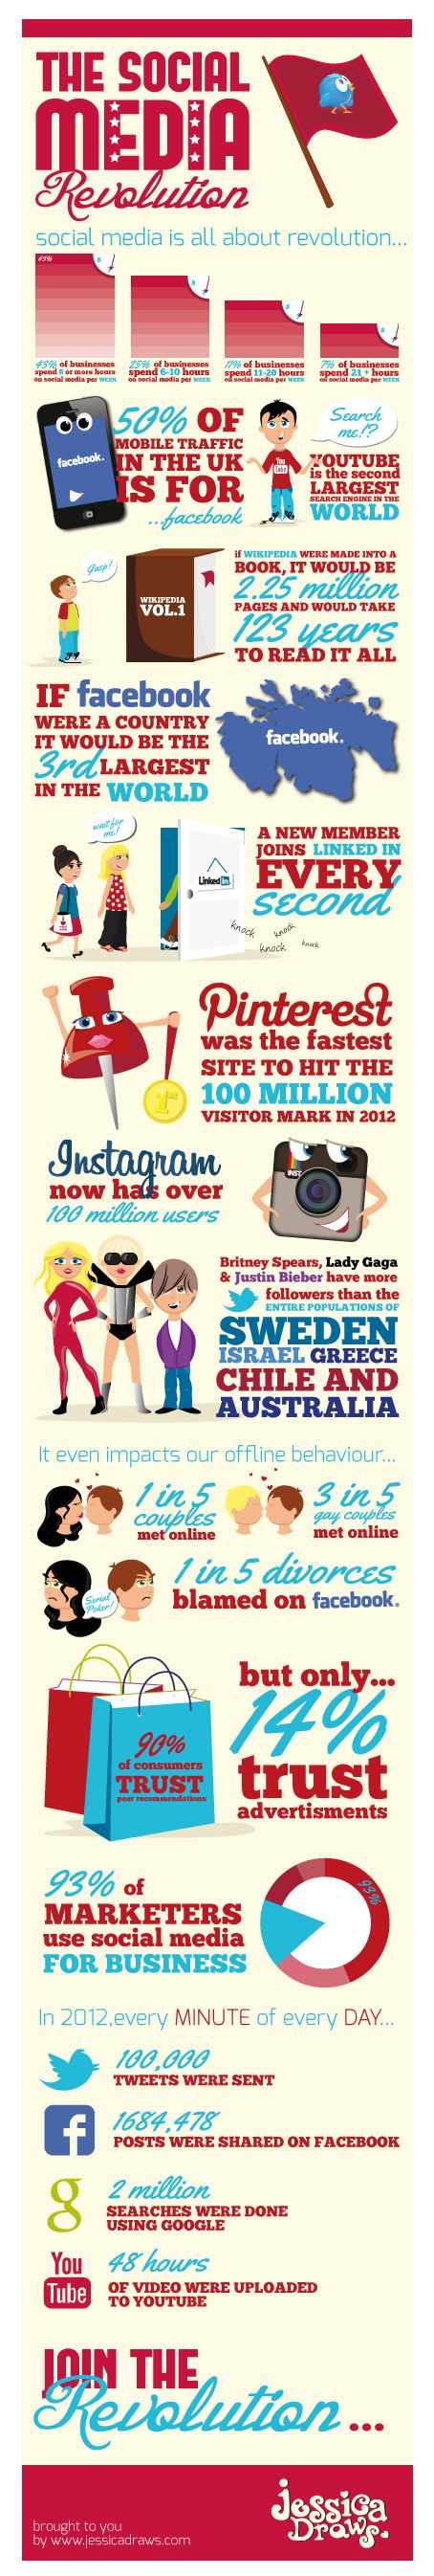 The Social Media Revolution: jaw-dropping facts and figures from Twitter, Facebook, Pinterest, YouTube and more! #infographic